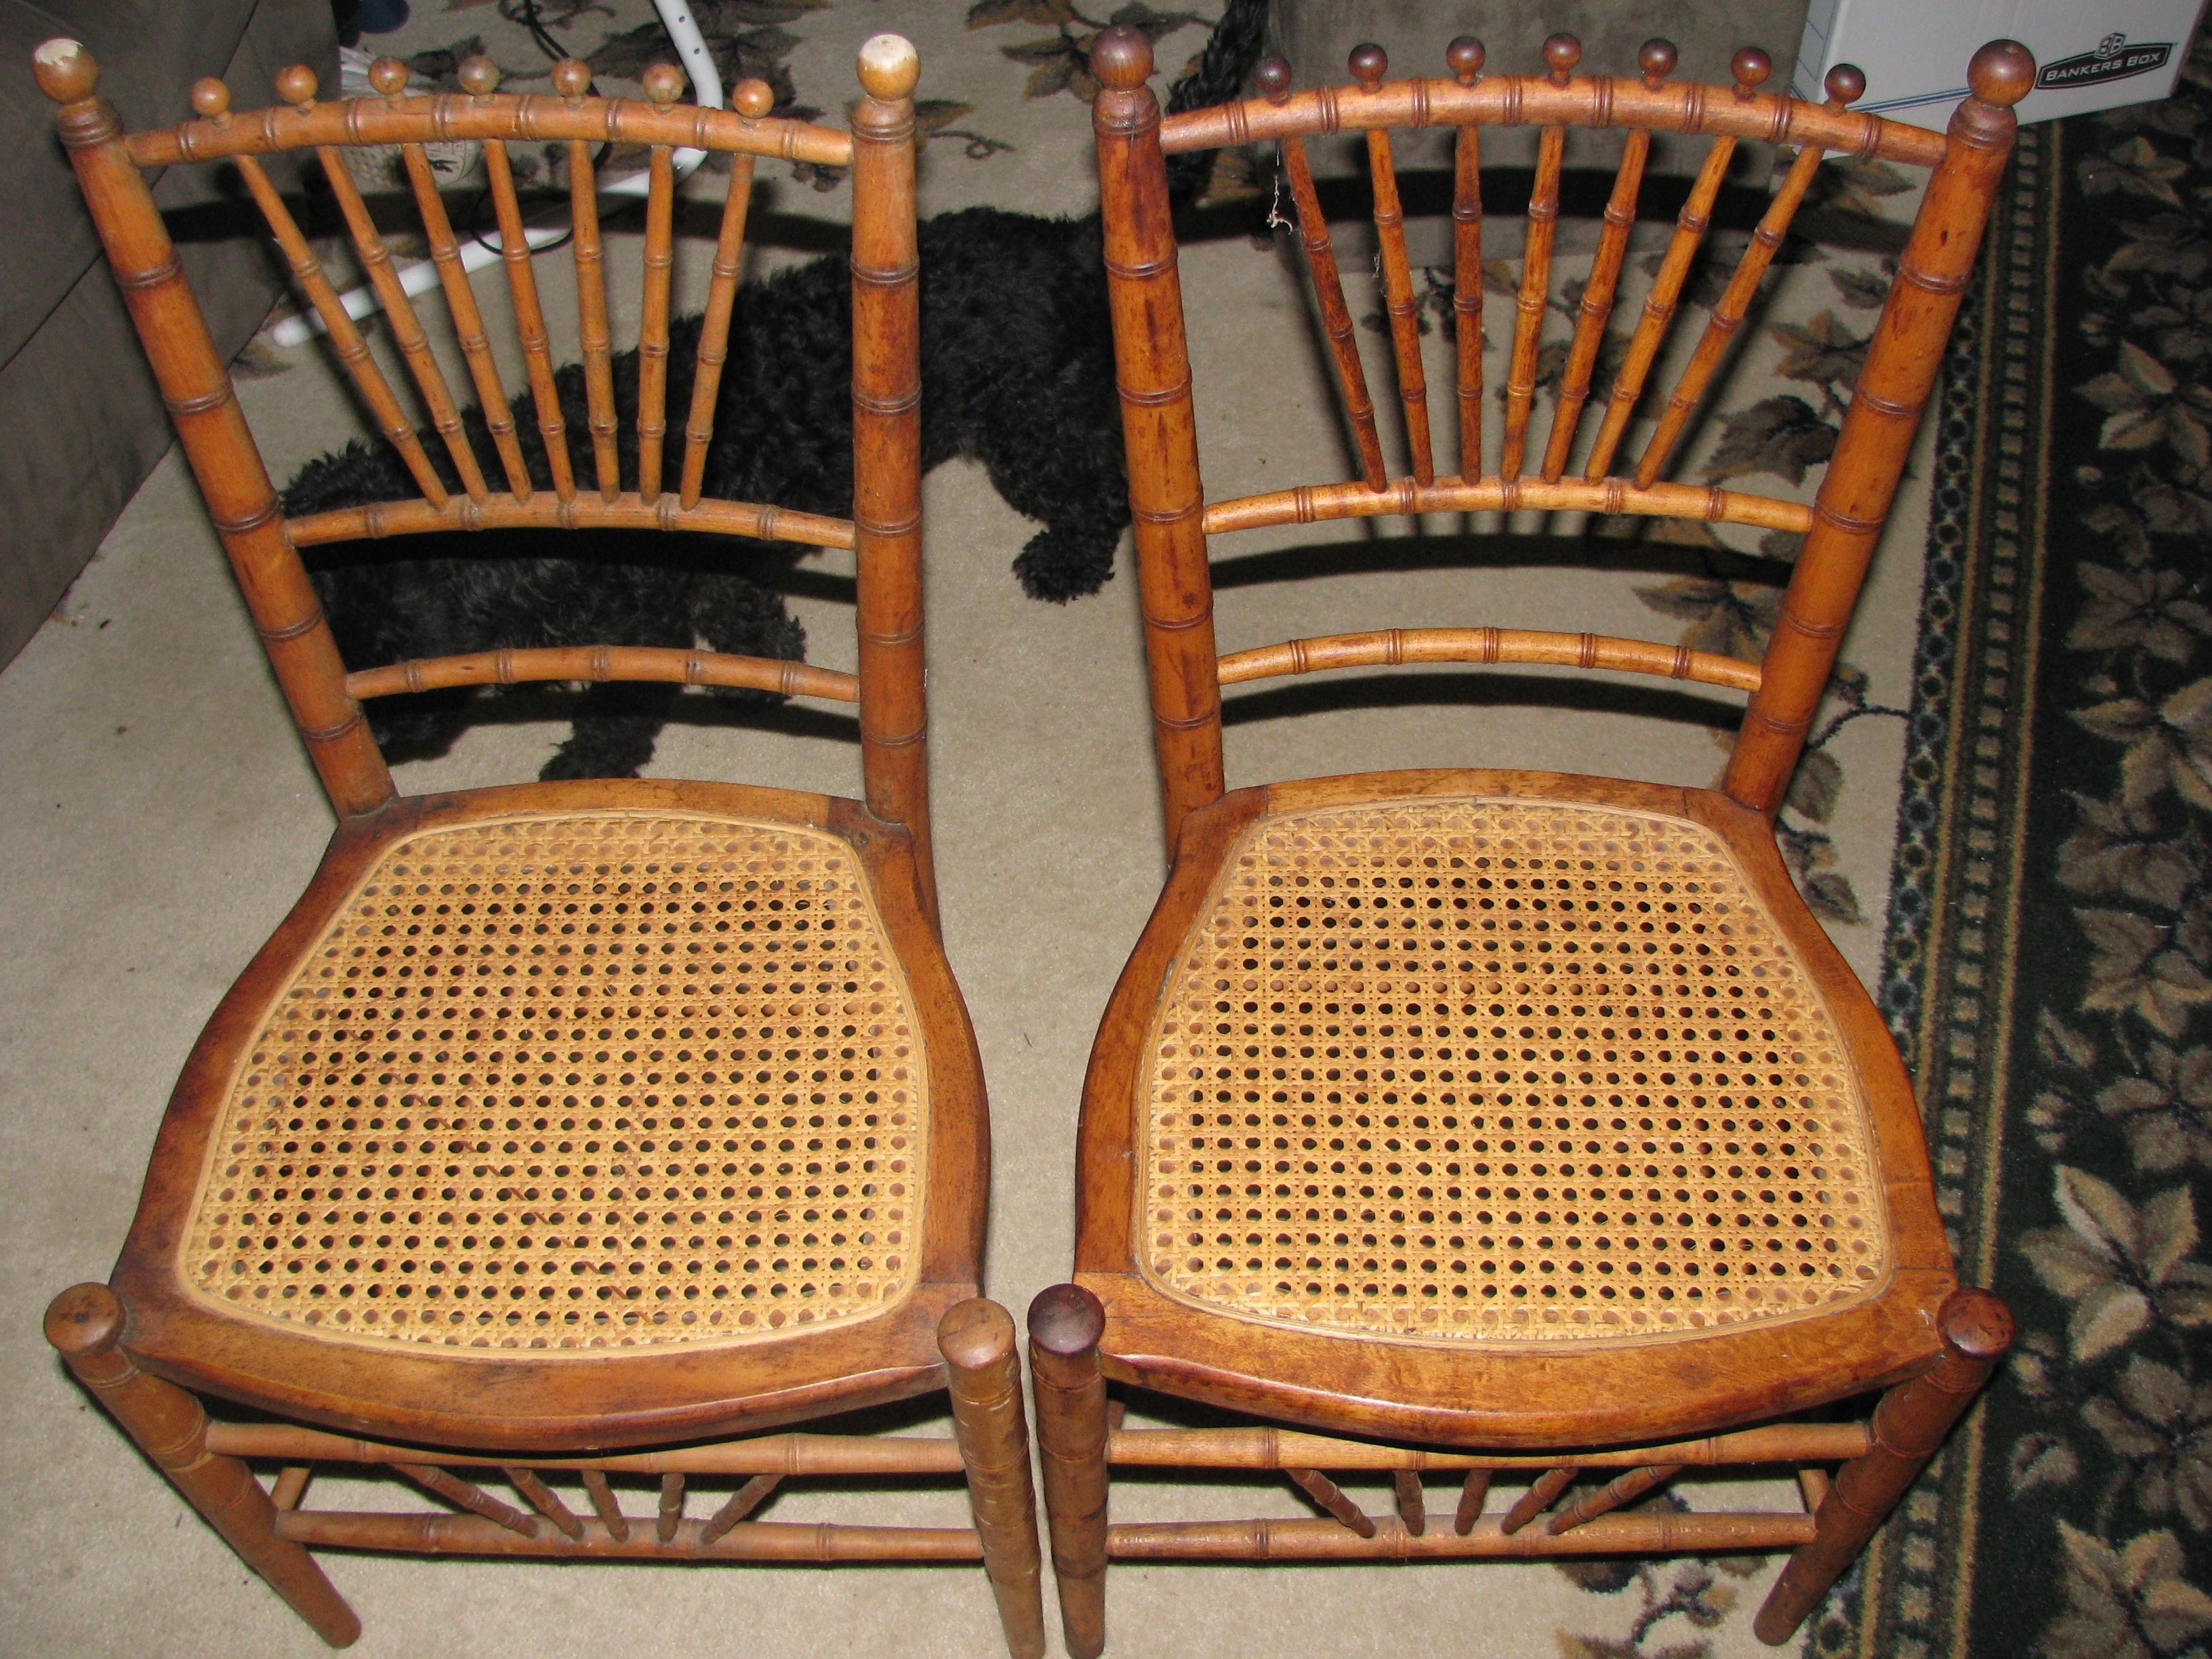 Etonnant 2 Antique Or Vintage Faux Bamboo Chairs With Pressed Cain Seats